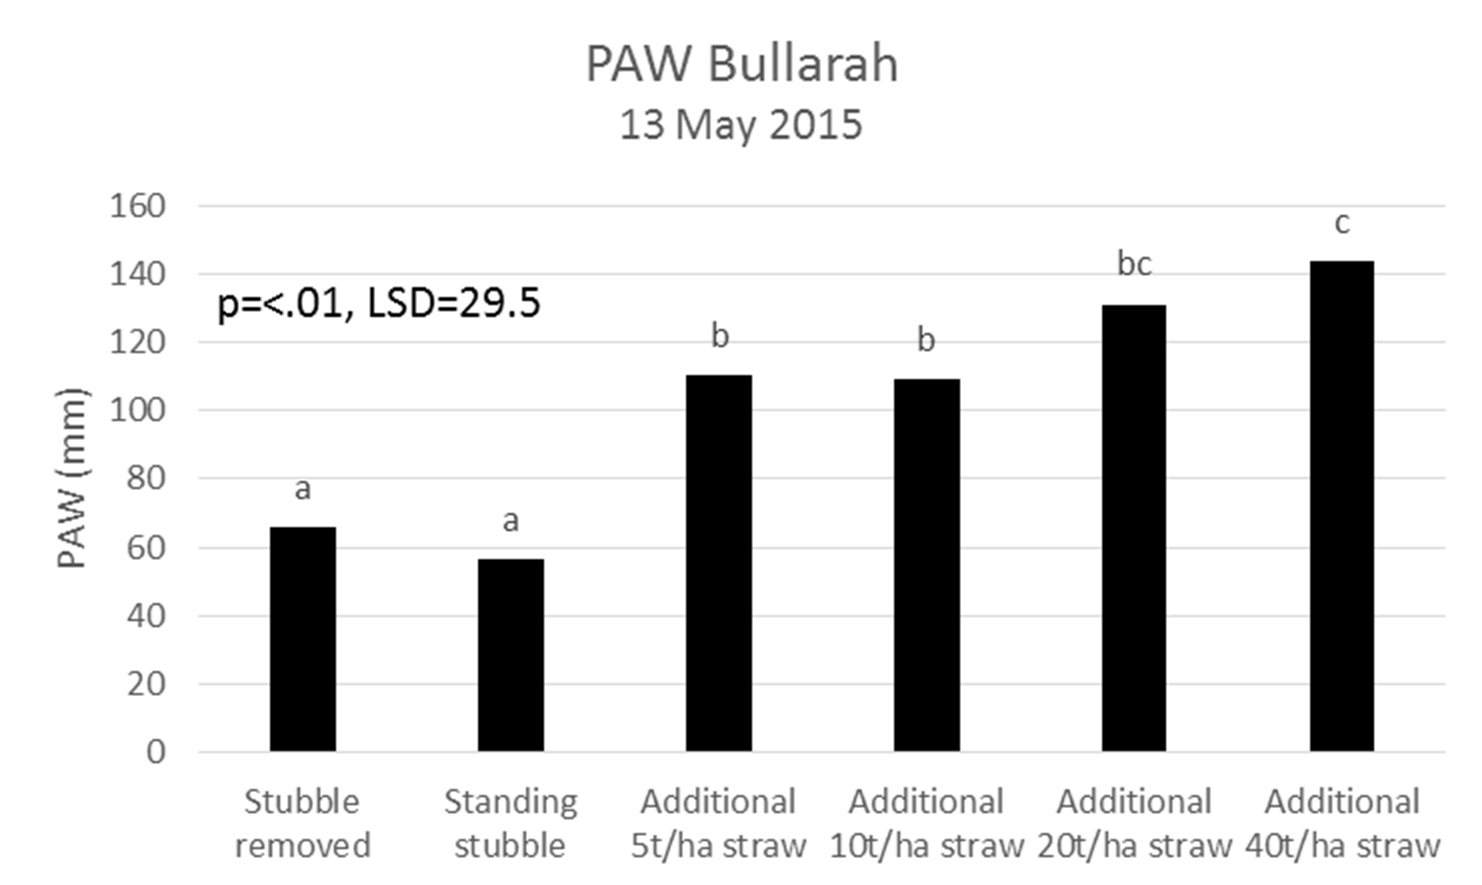 Figure 1. An additional 53mm of PAW was stored where 5t/ha of straw was applied compared to standing stubble alone. Additional 40t/ha straw resulted in extra 87mm PAW compared to the standard standing stubble. Based on water use efficiency (WUE) (wheat) of 15kg/mm/ha, an extra 87mm of PAW could result in an additional 1.3t/ha of grain.